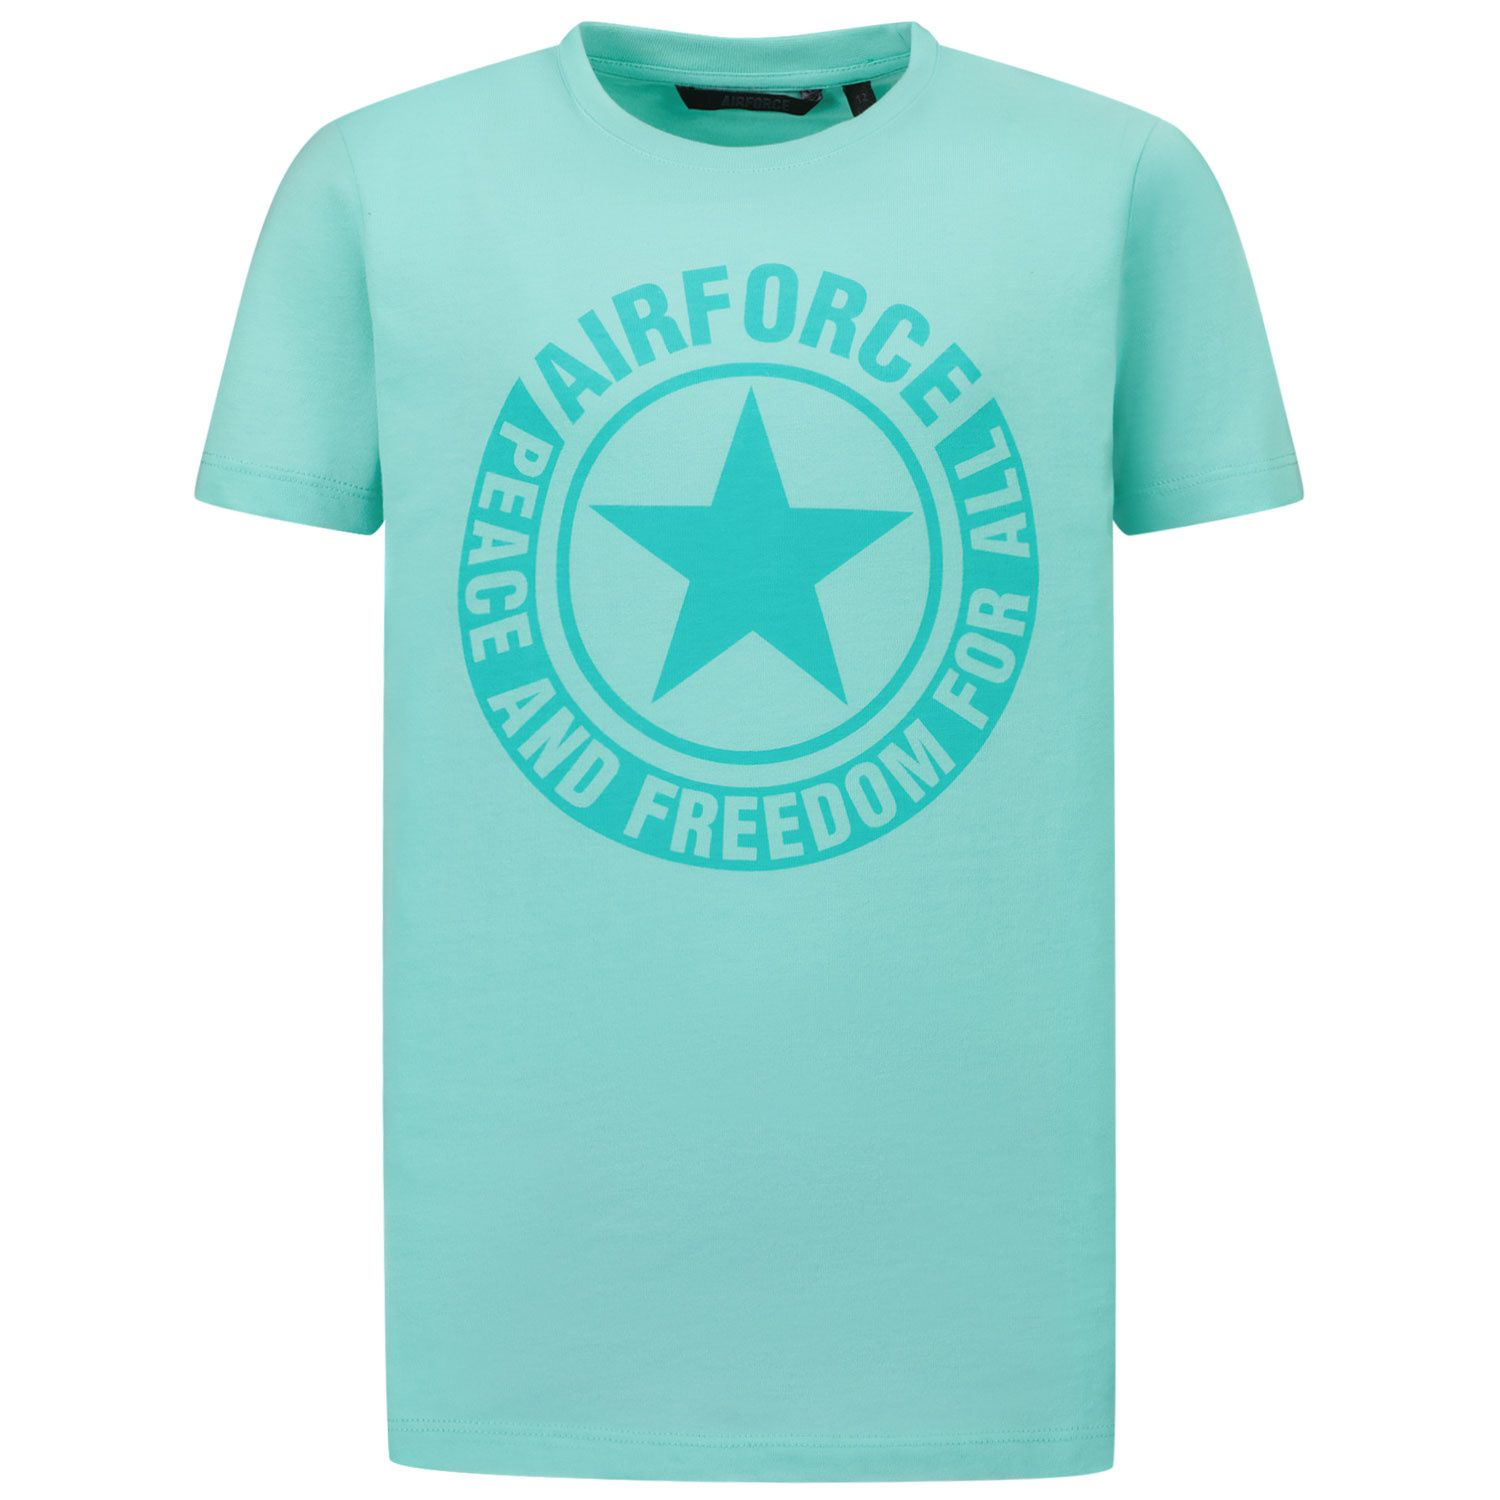 Afbeelding van Airforce TBB0730 kinder t-shirt turquoise